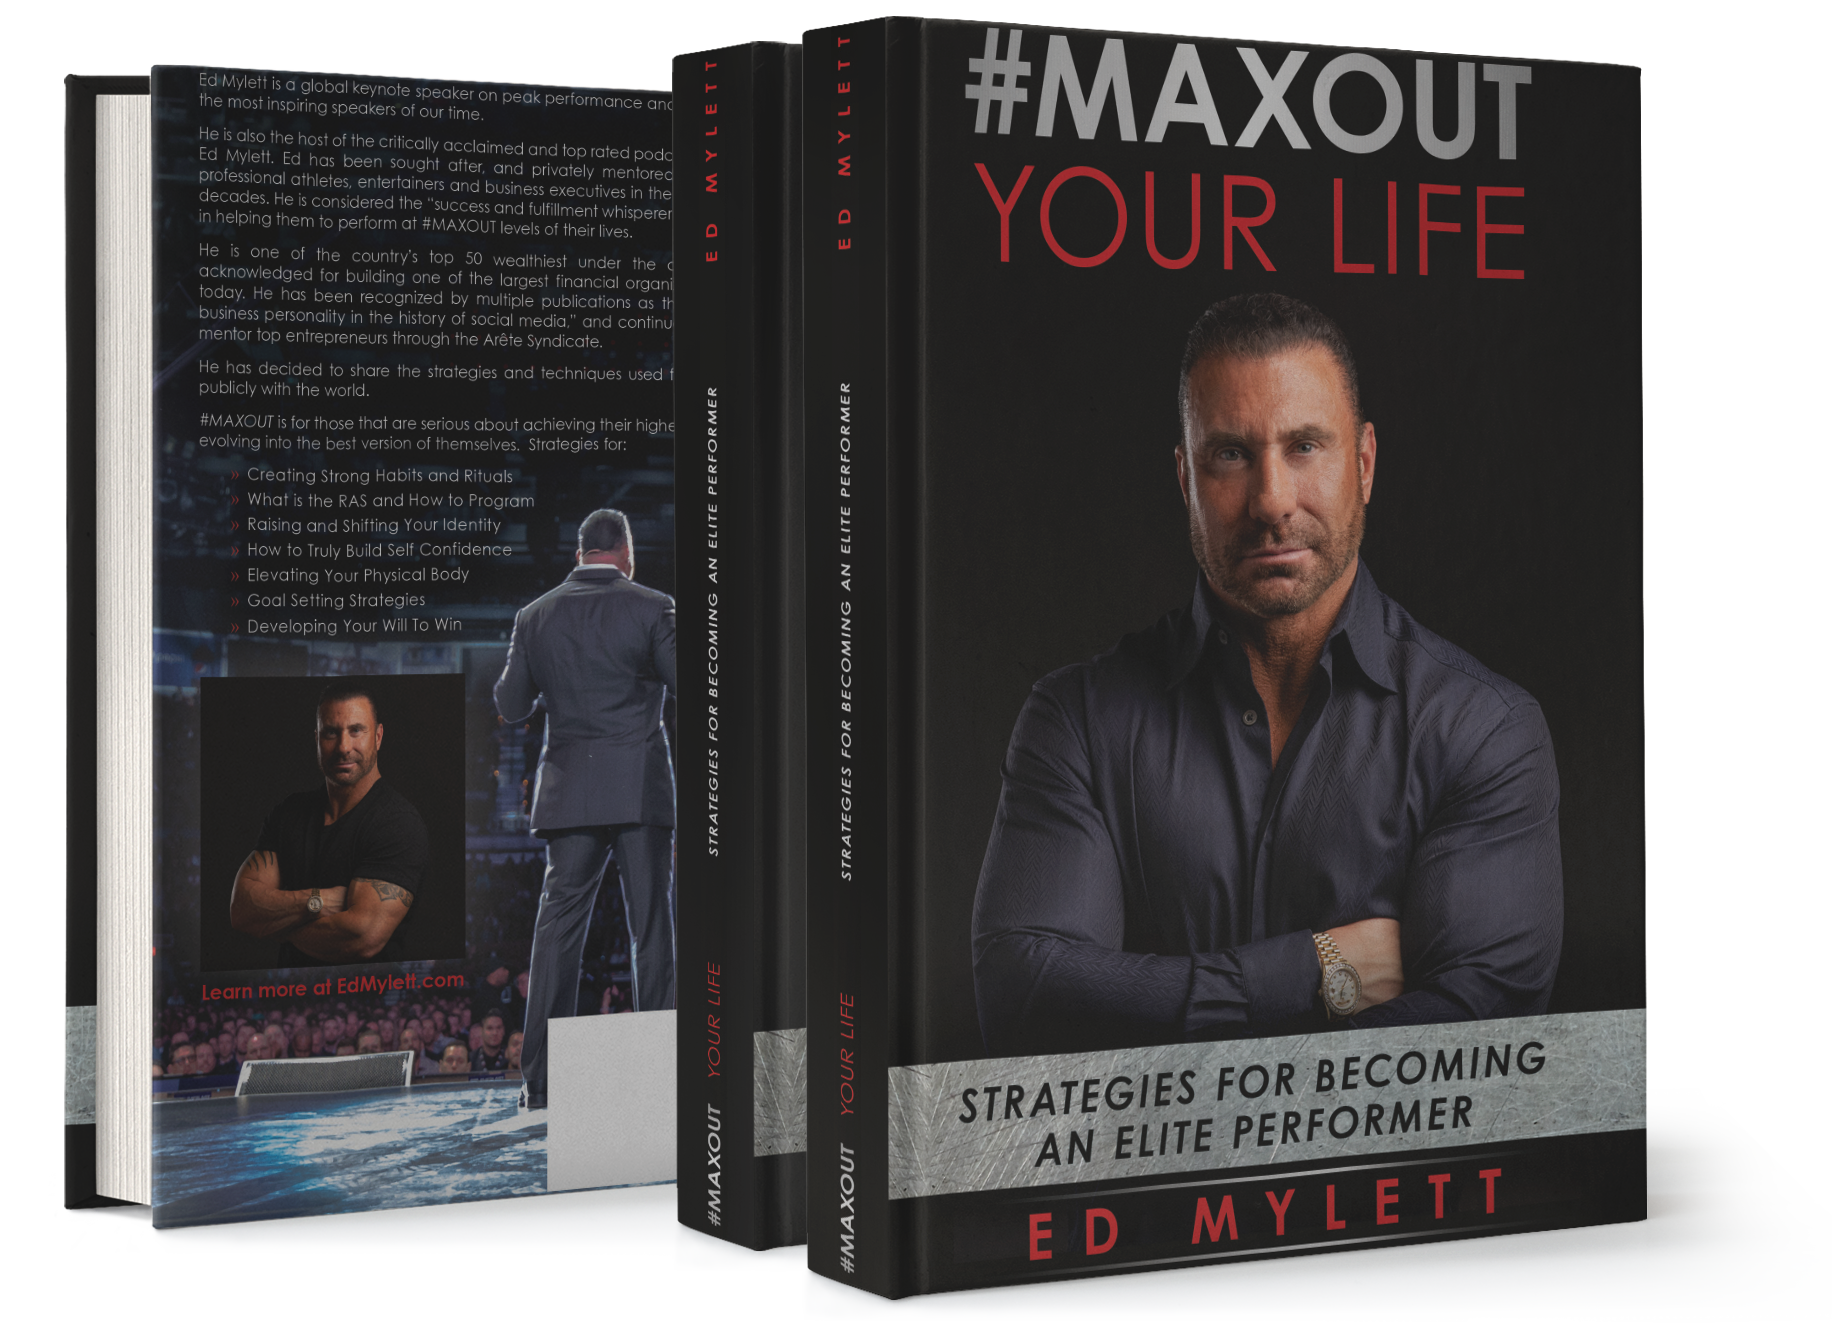 Maxout Your Life